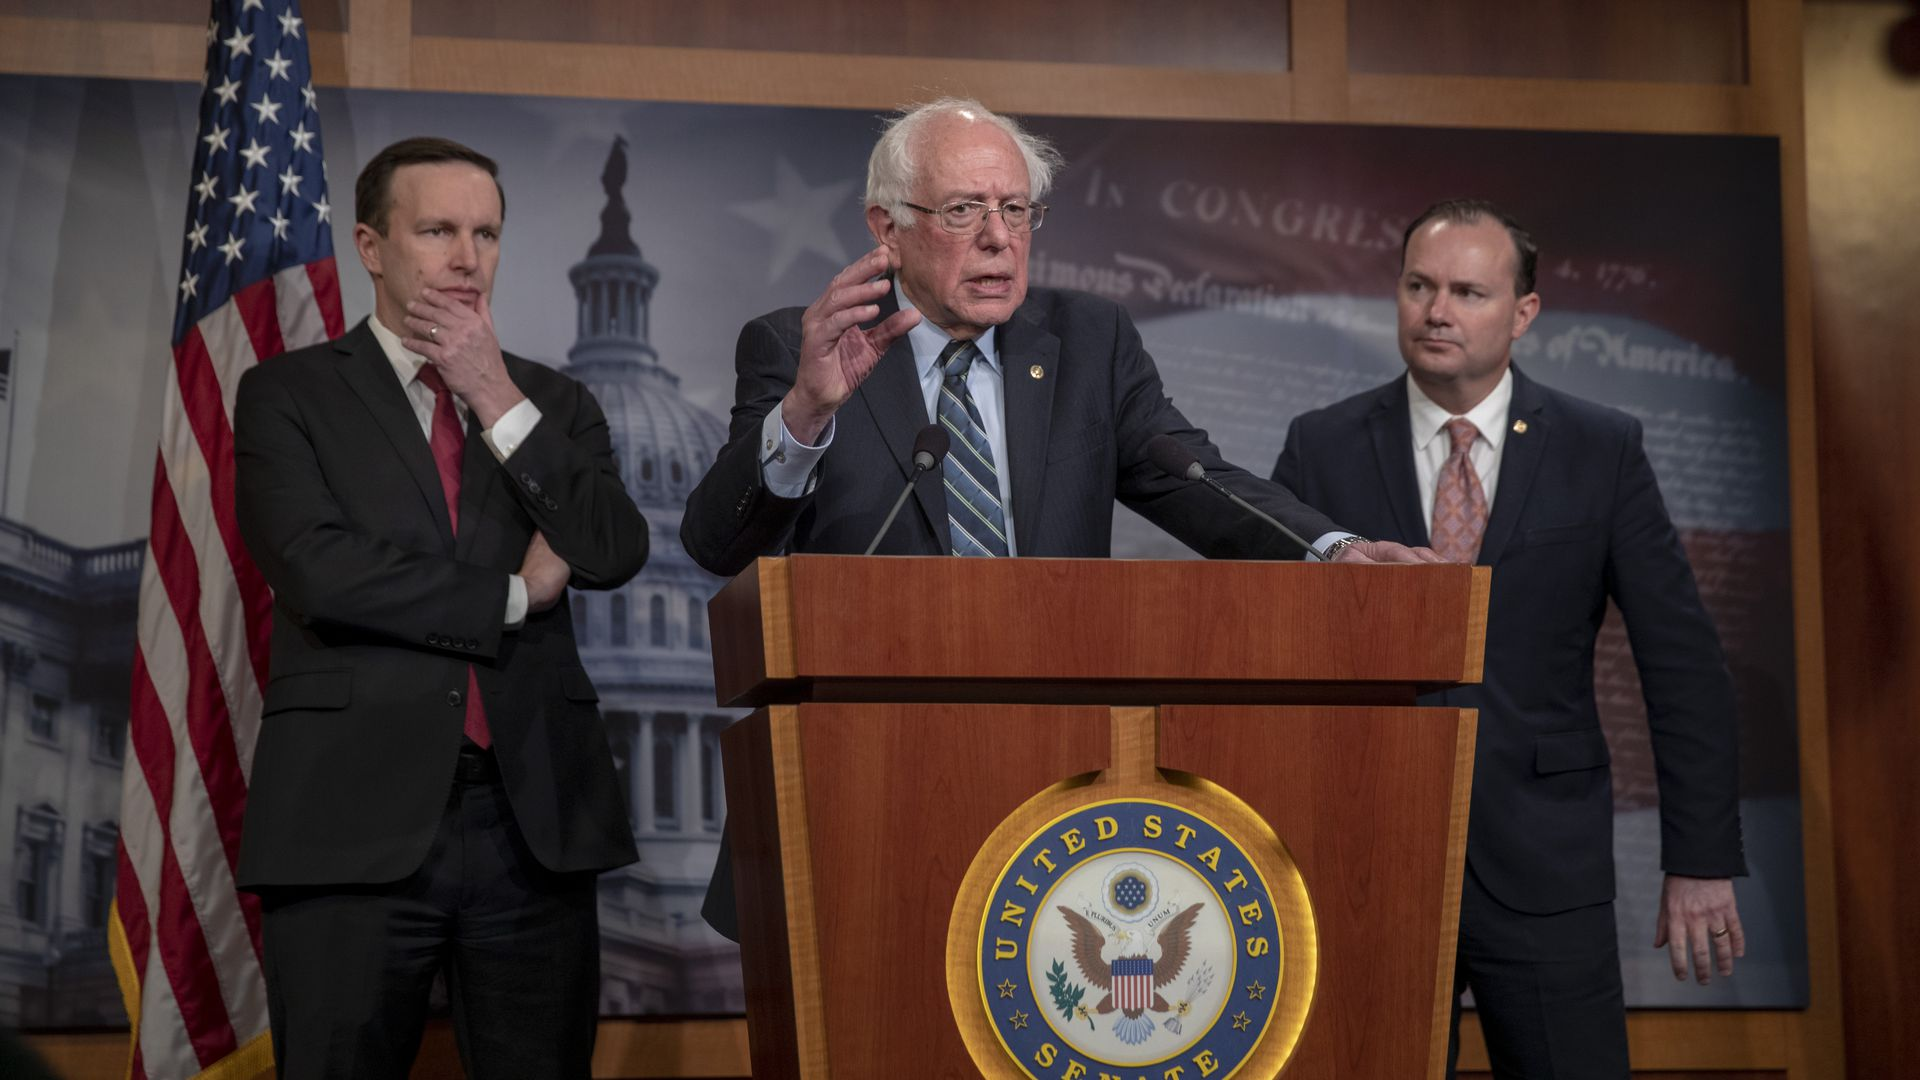 Bernie Sanders apologizes for pattern of sexual misconduct by 2016 campaign staff